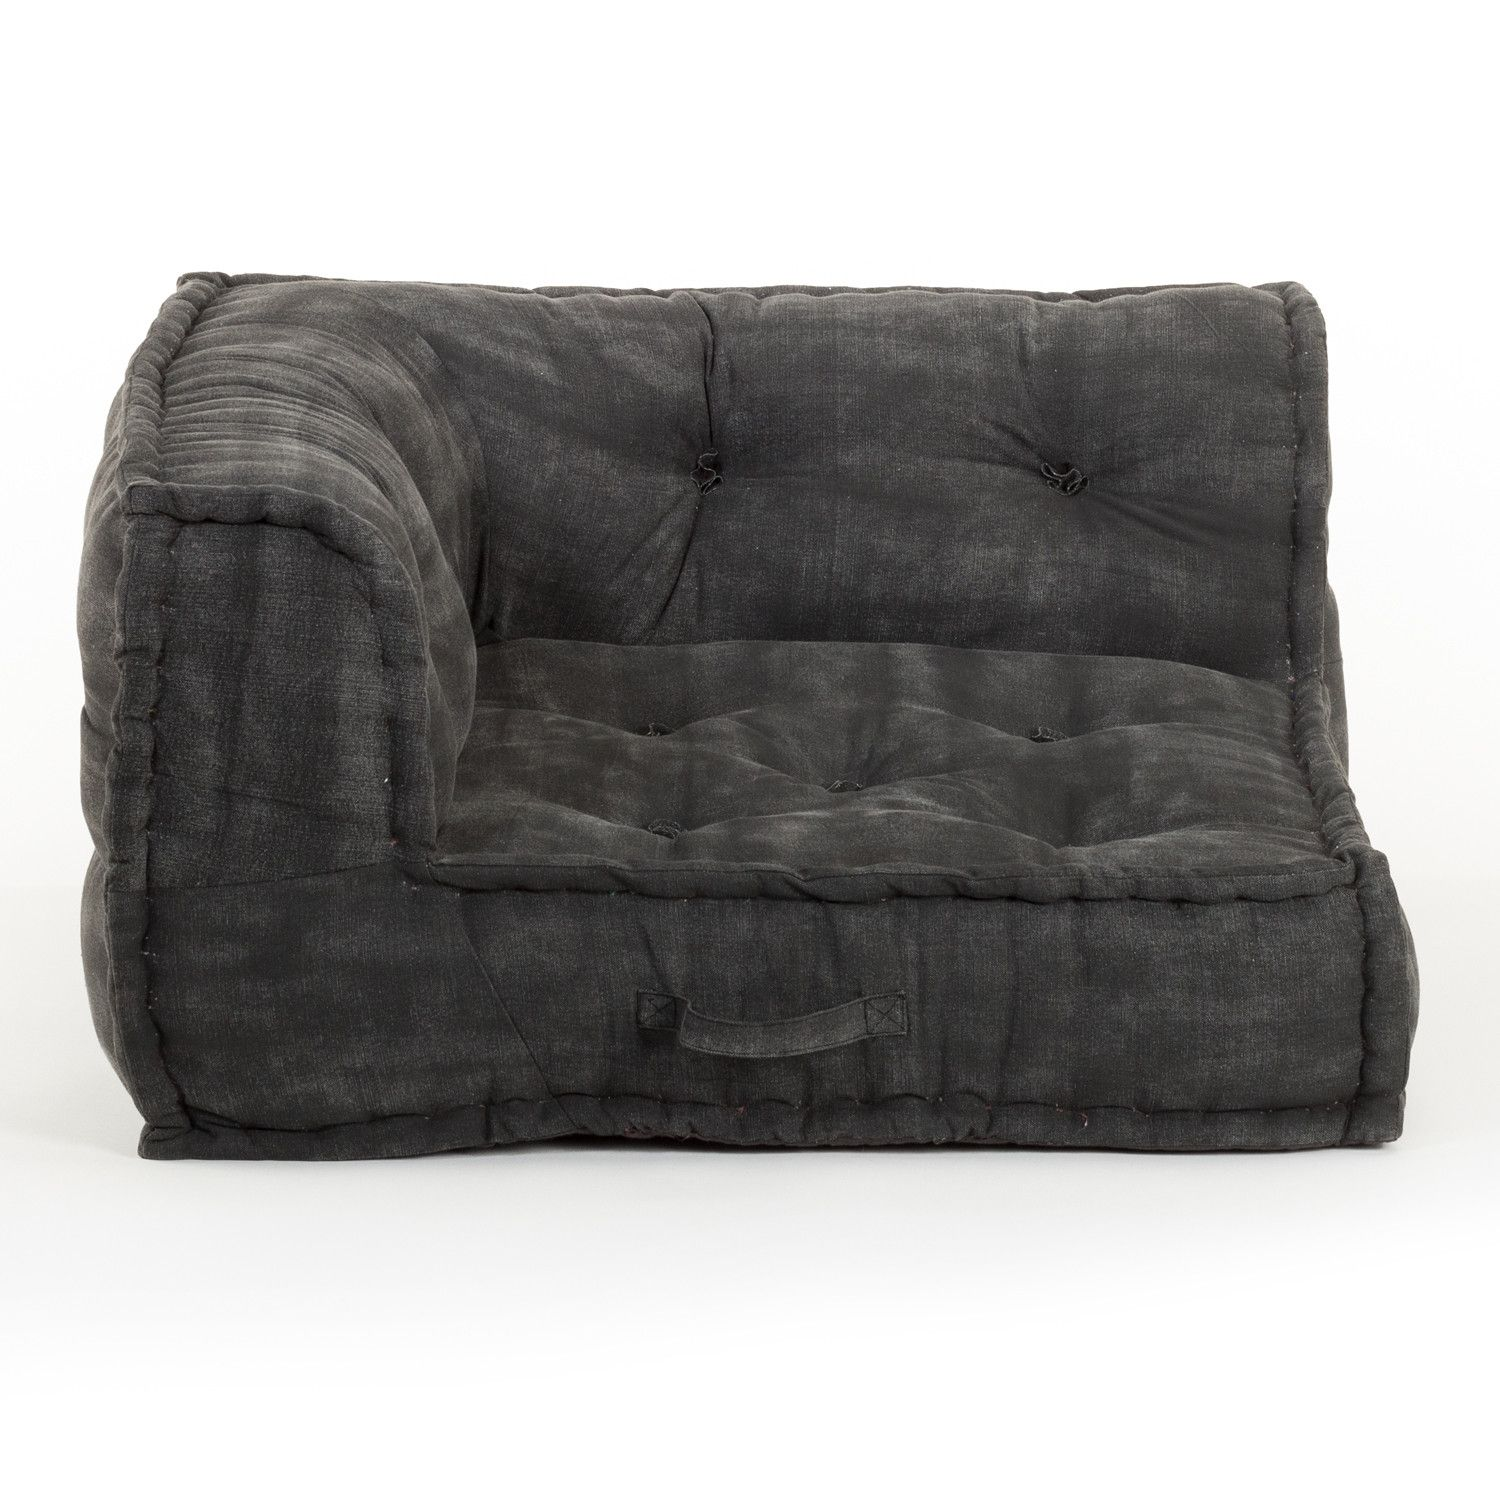 Sklum Dhel Sofa The Adventures Of Lolo